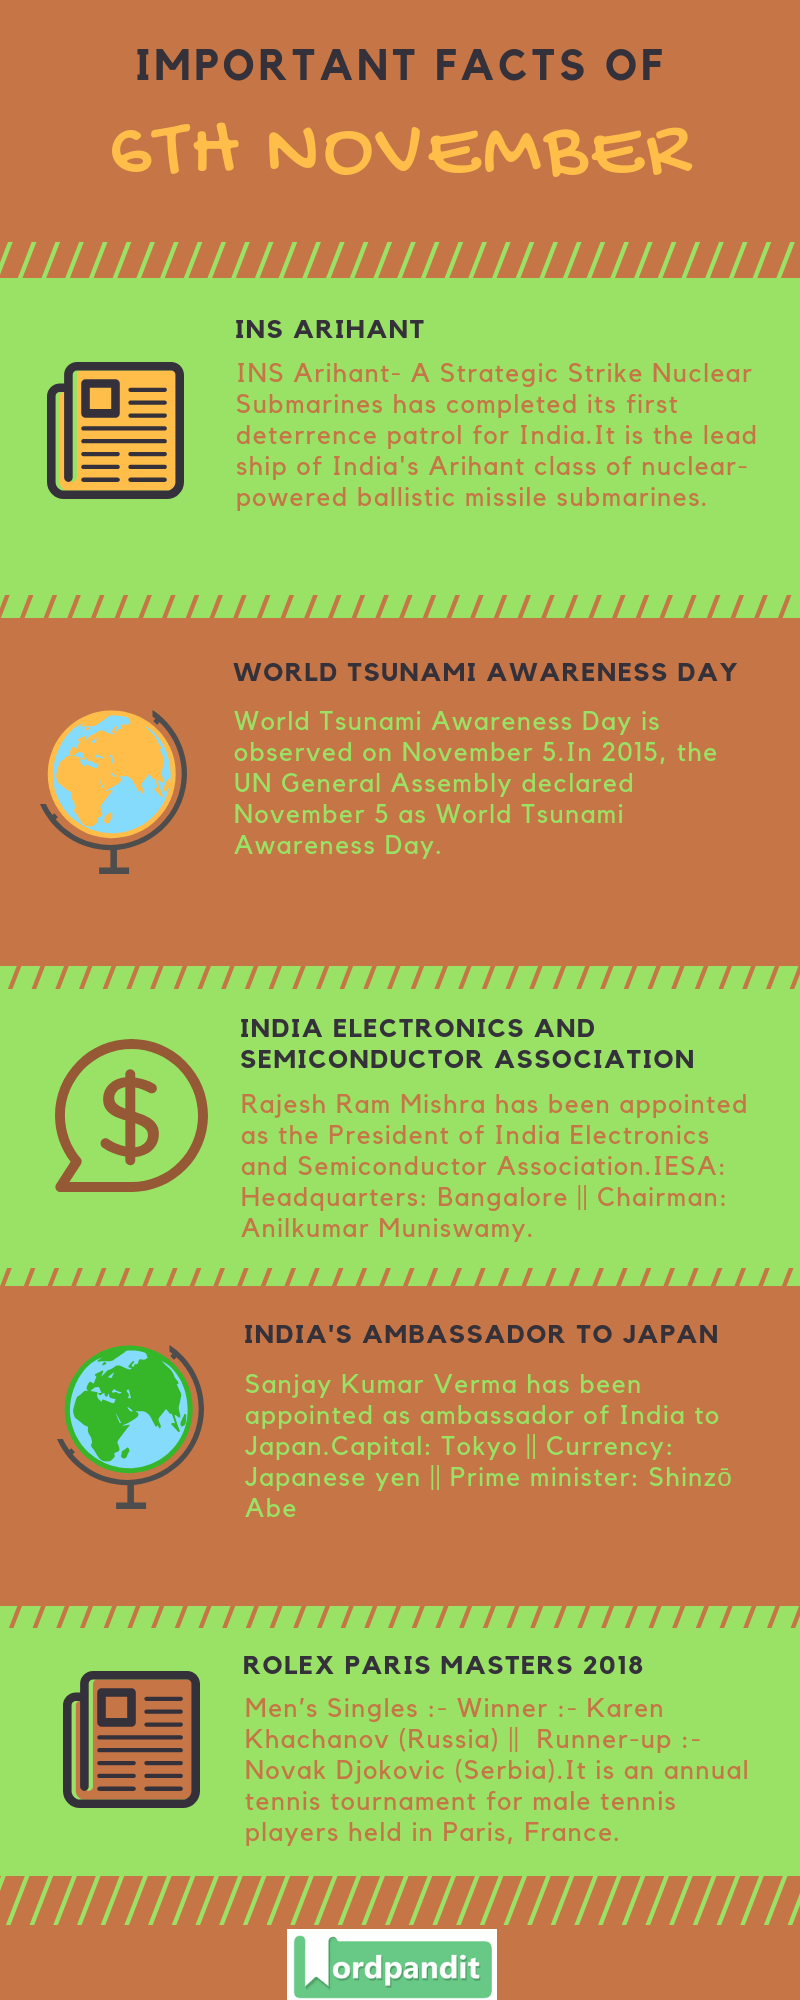 Daily Current Affairs 6 November 2018 Current Affairs Quiz 6 November 2018 Current Affairs Infographic